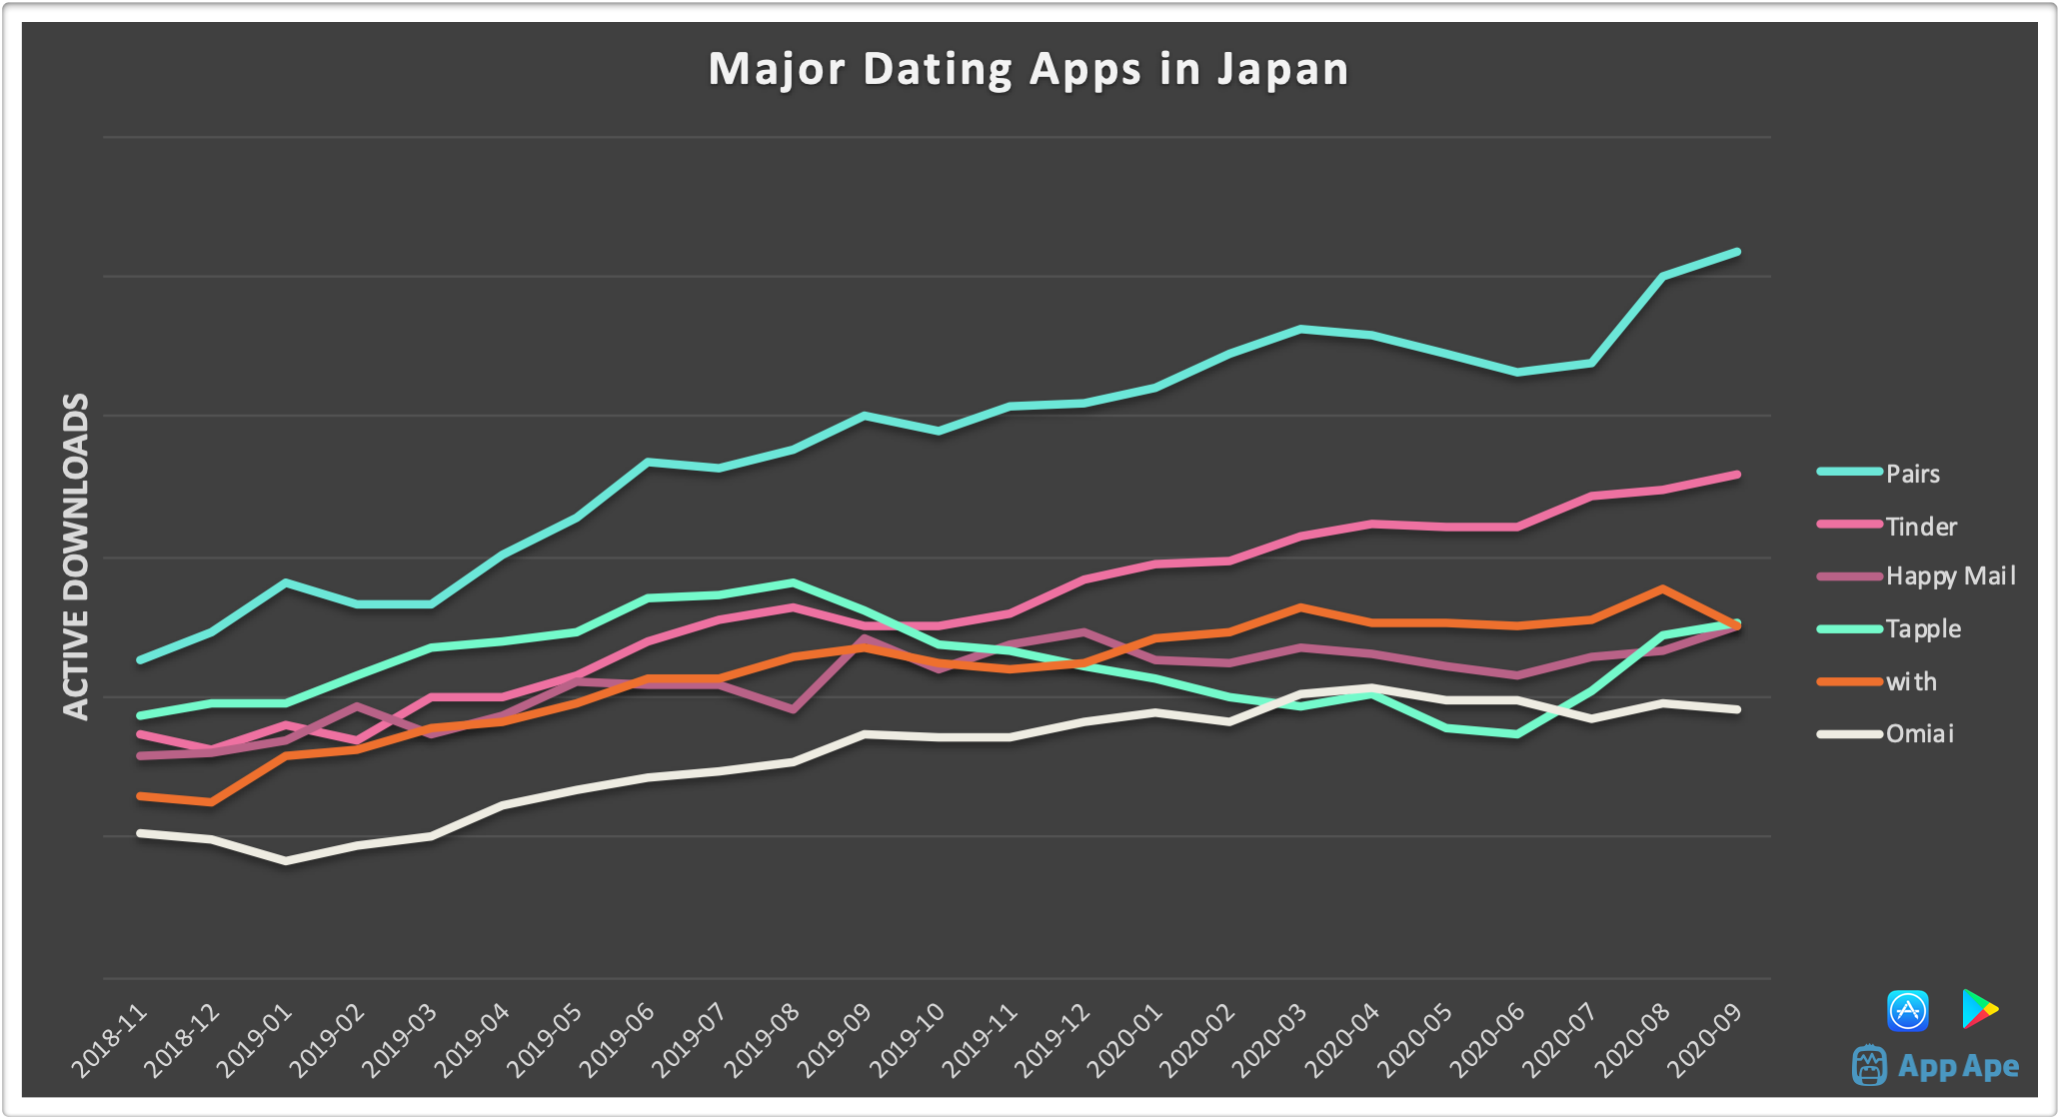 Number of active downloads of major dating apps in Japan